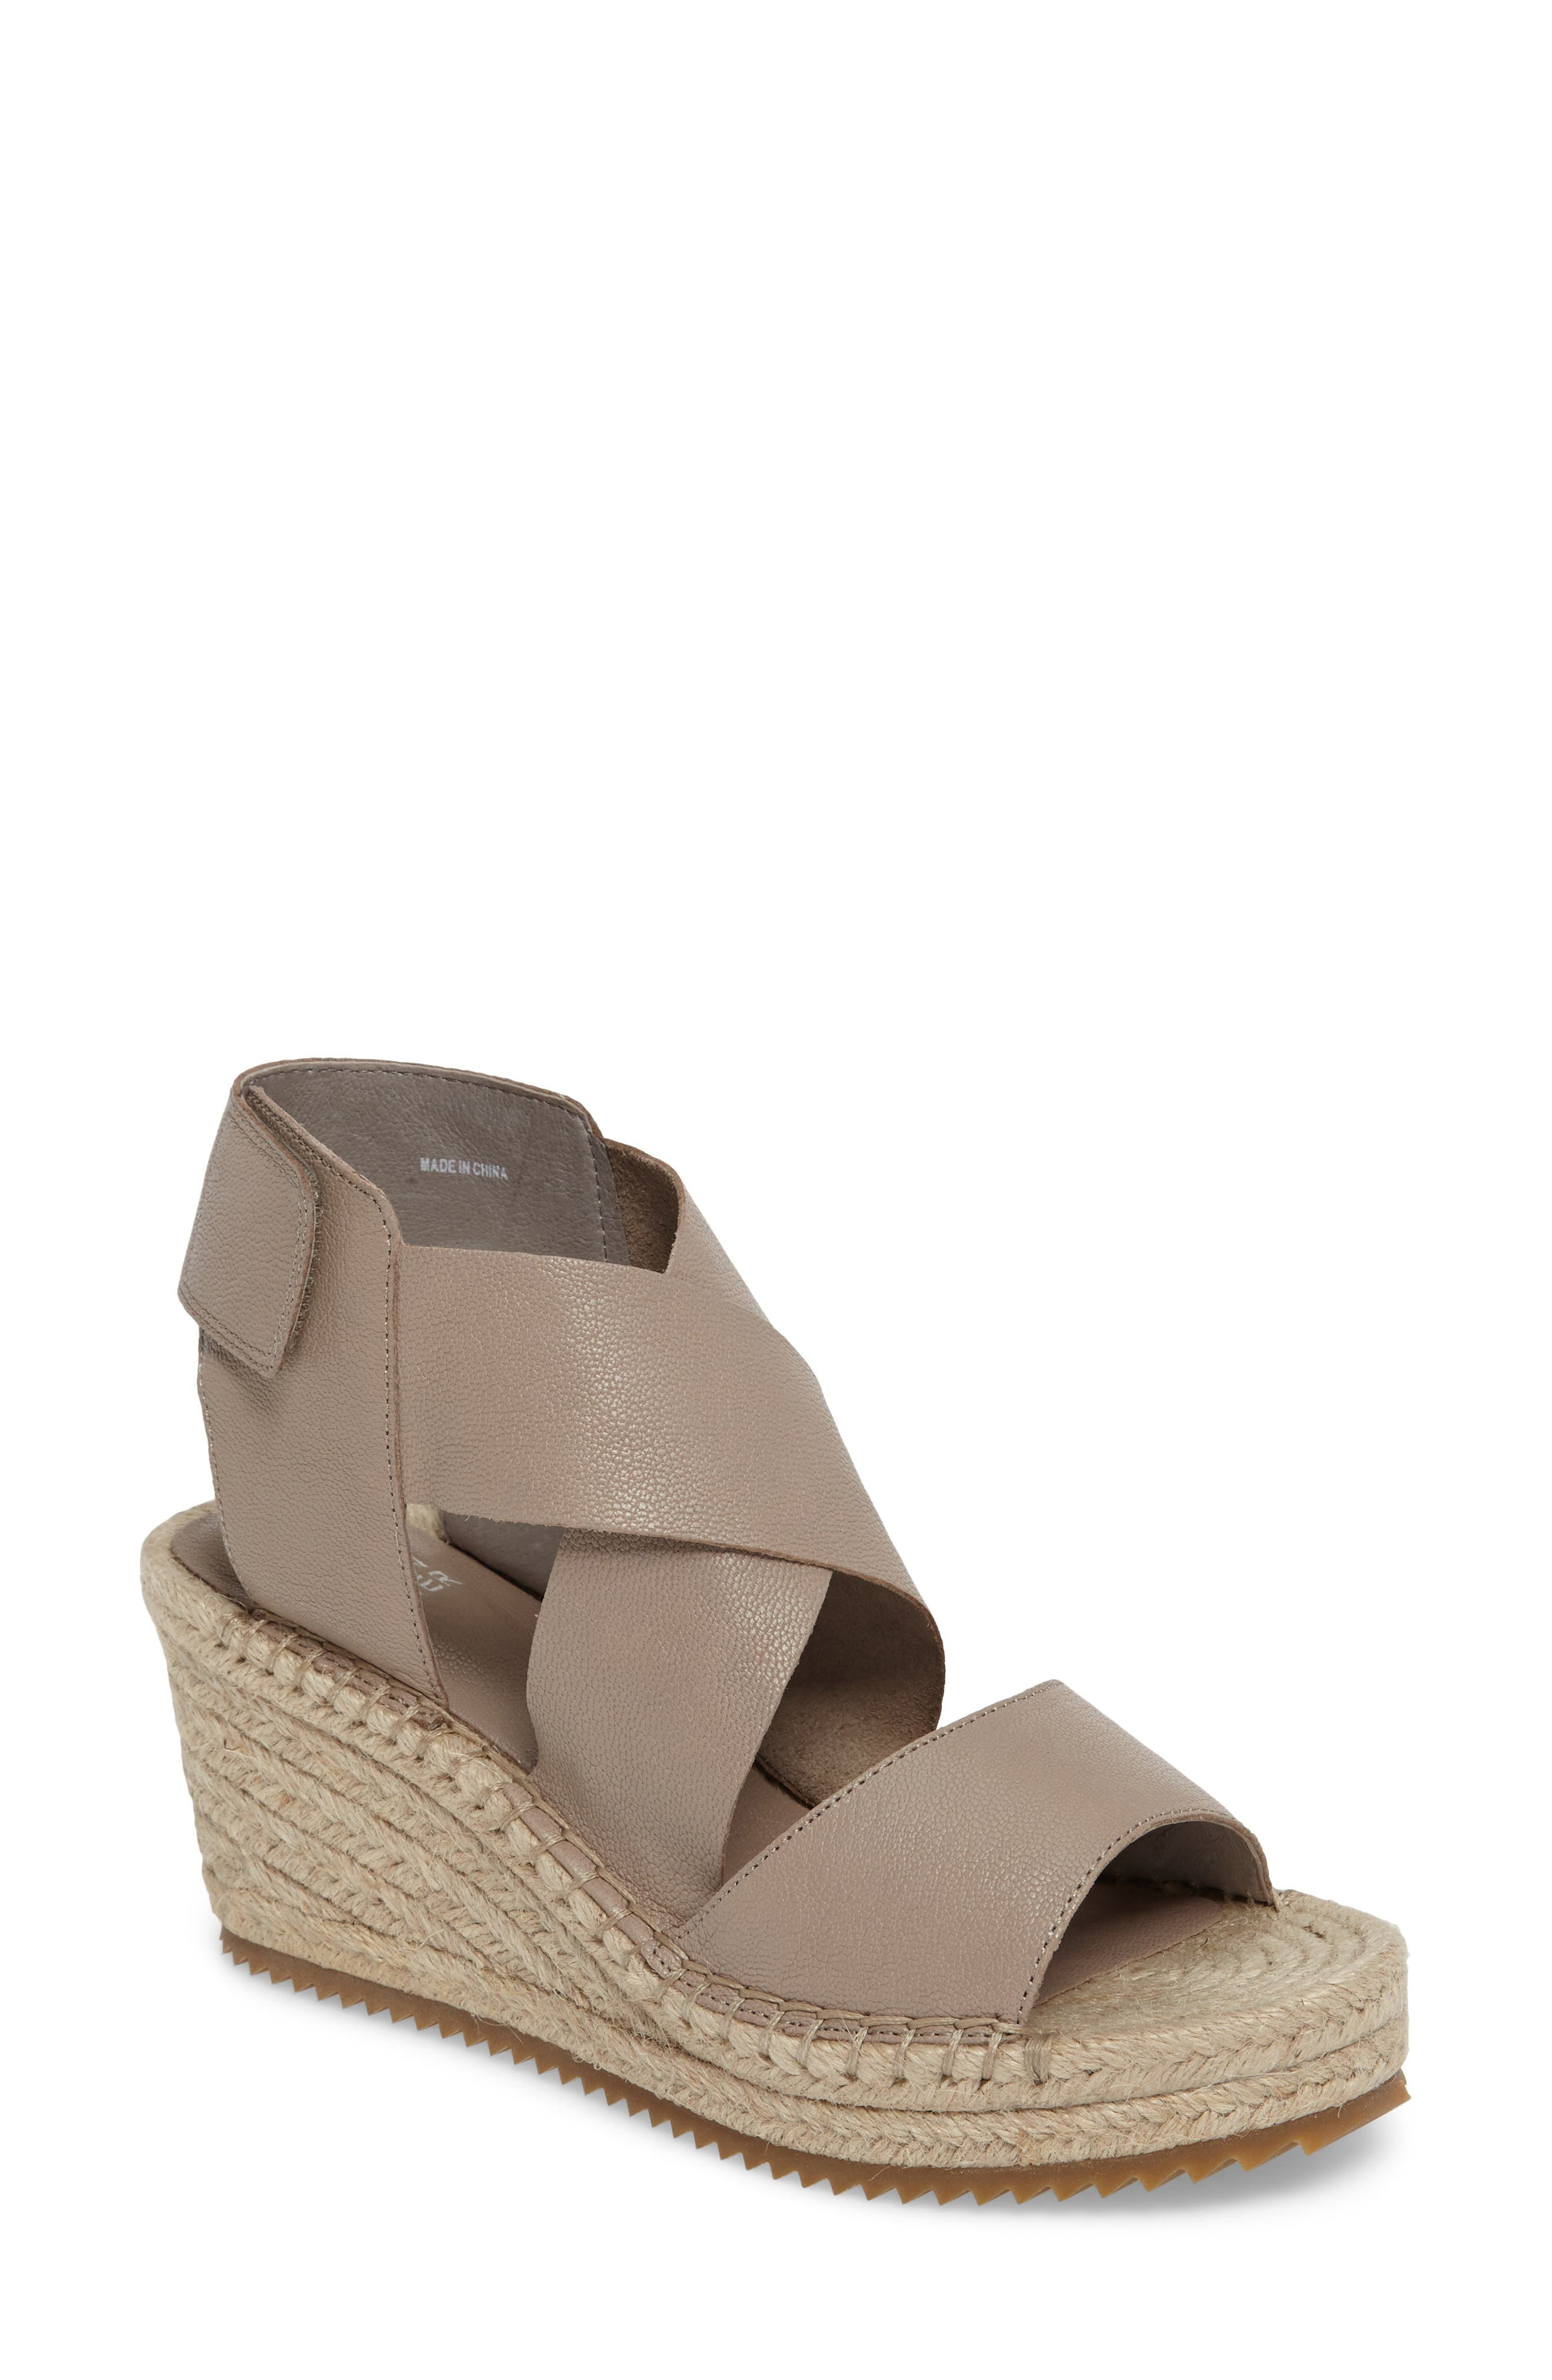 'Willow' Espadrille Wedge Sandal,                         Main,                         color, Oyster Leather